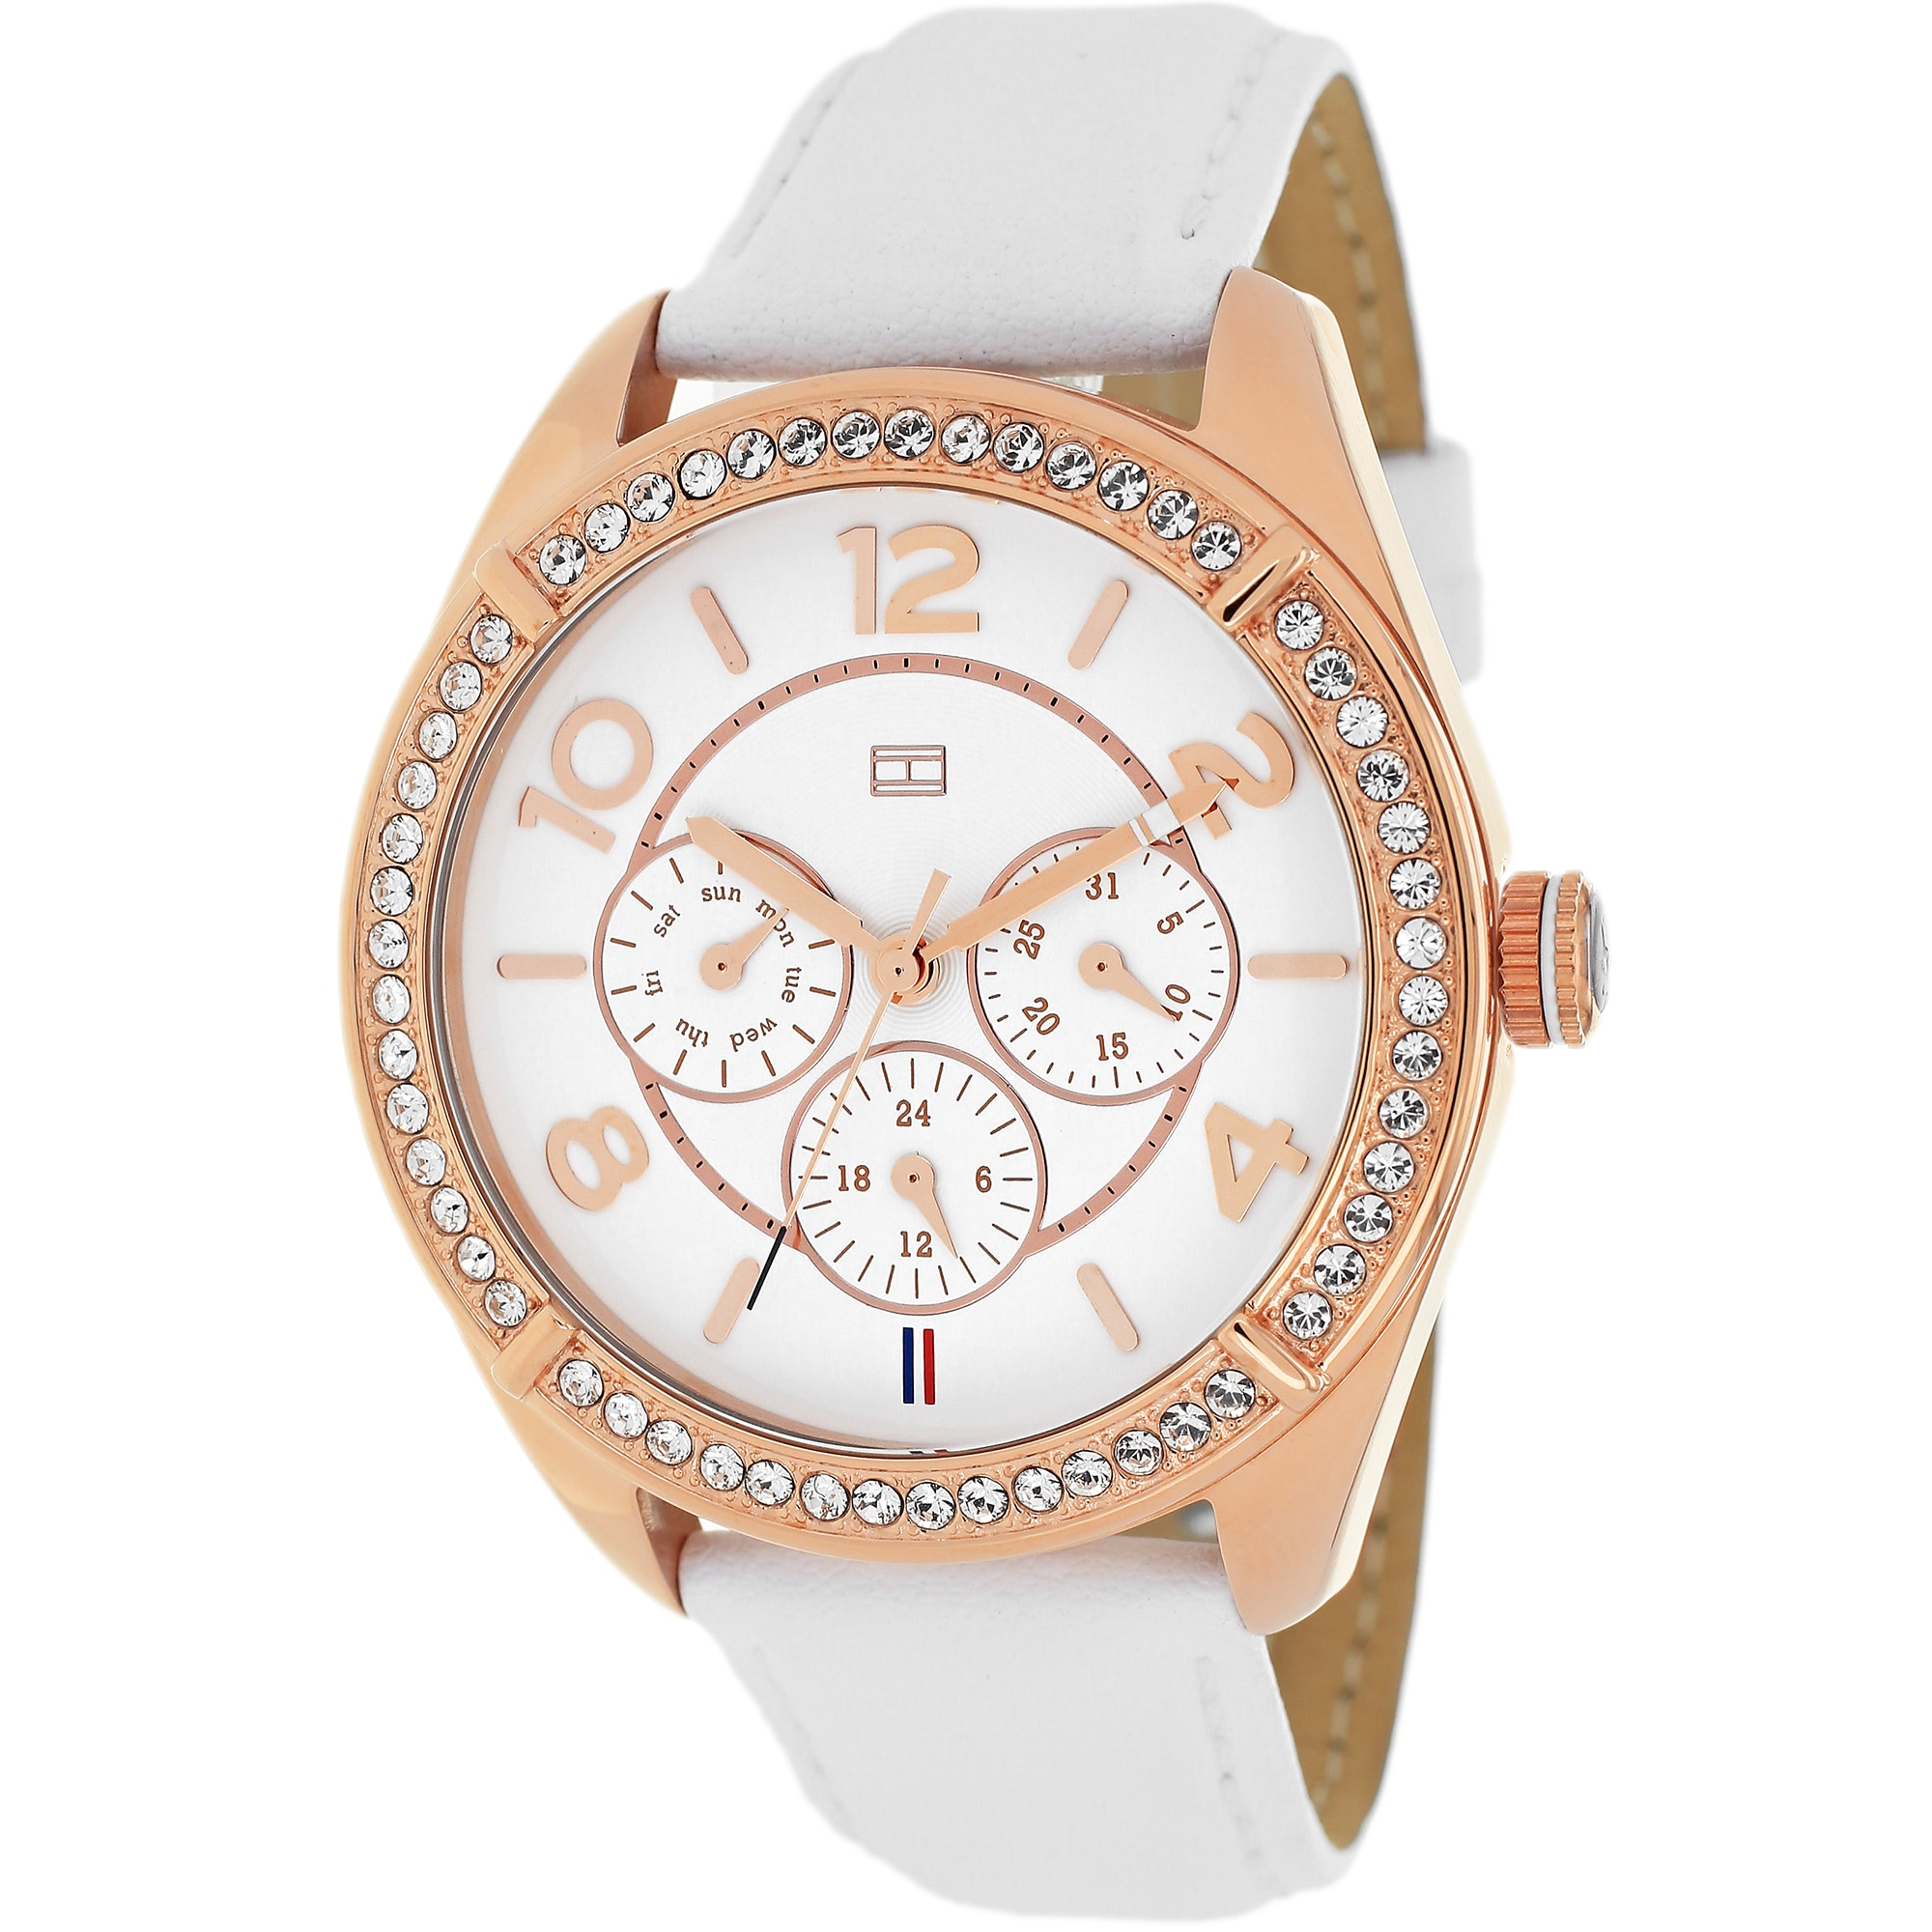 705e6e6ea Shop Tommy Hilfiger Women's 1781251 Sport Chronograph White Leather Watch -  Free Shipping Today - Overstock - 9361984